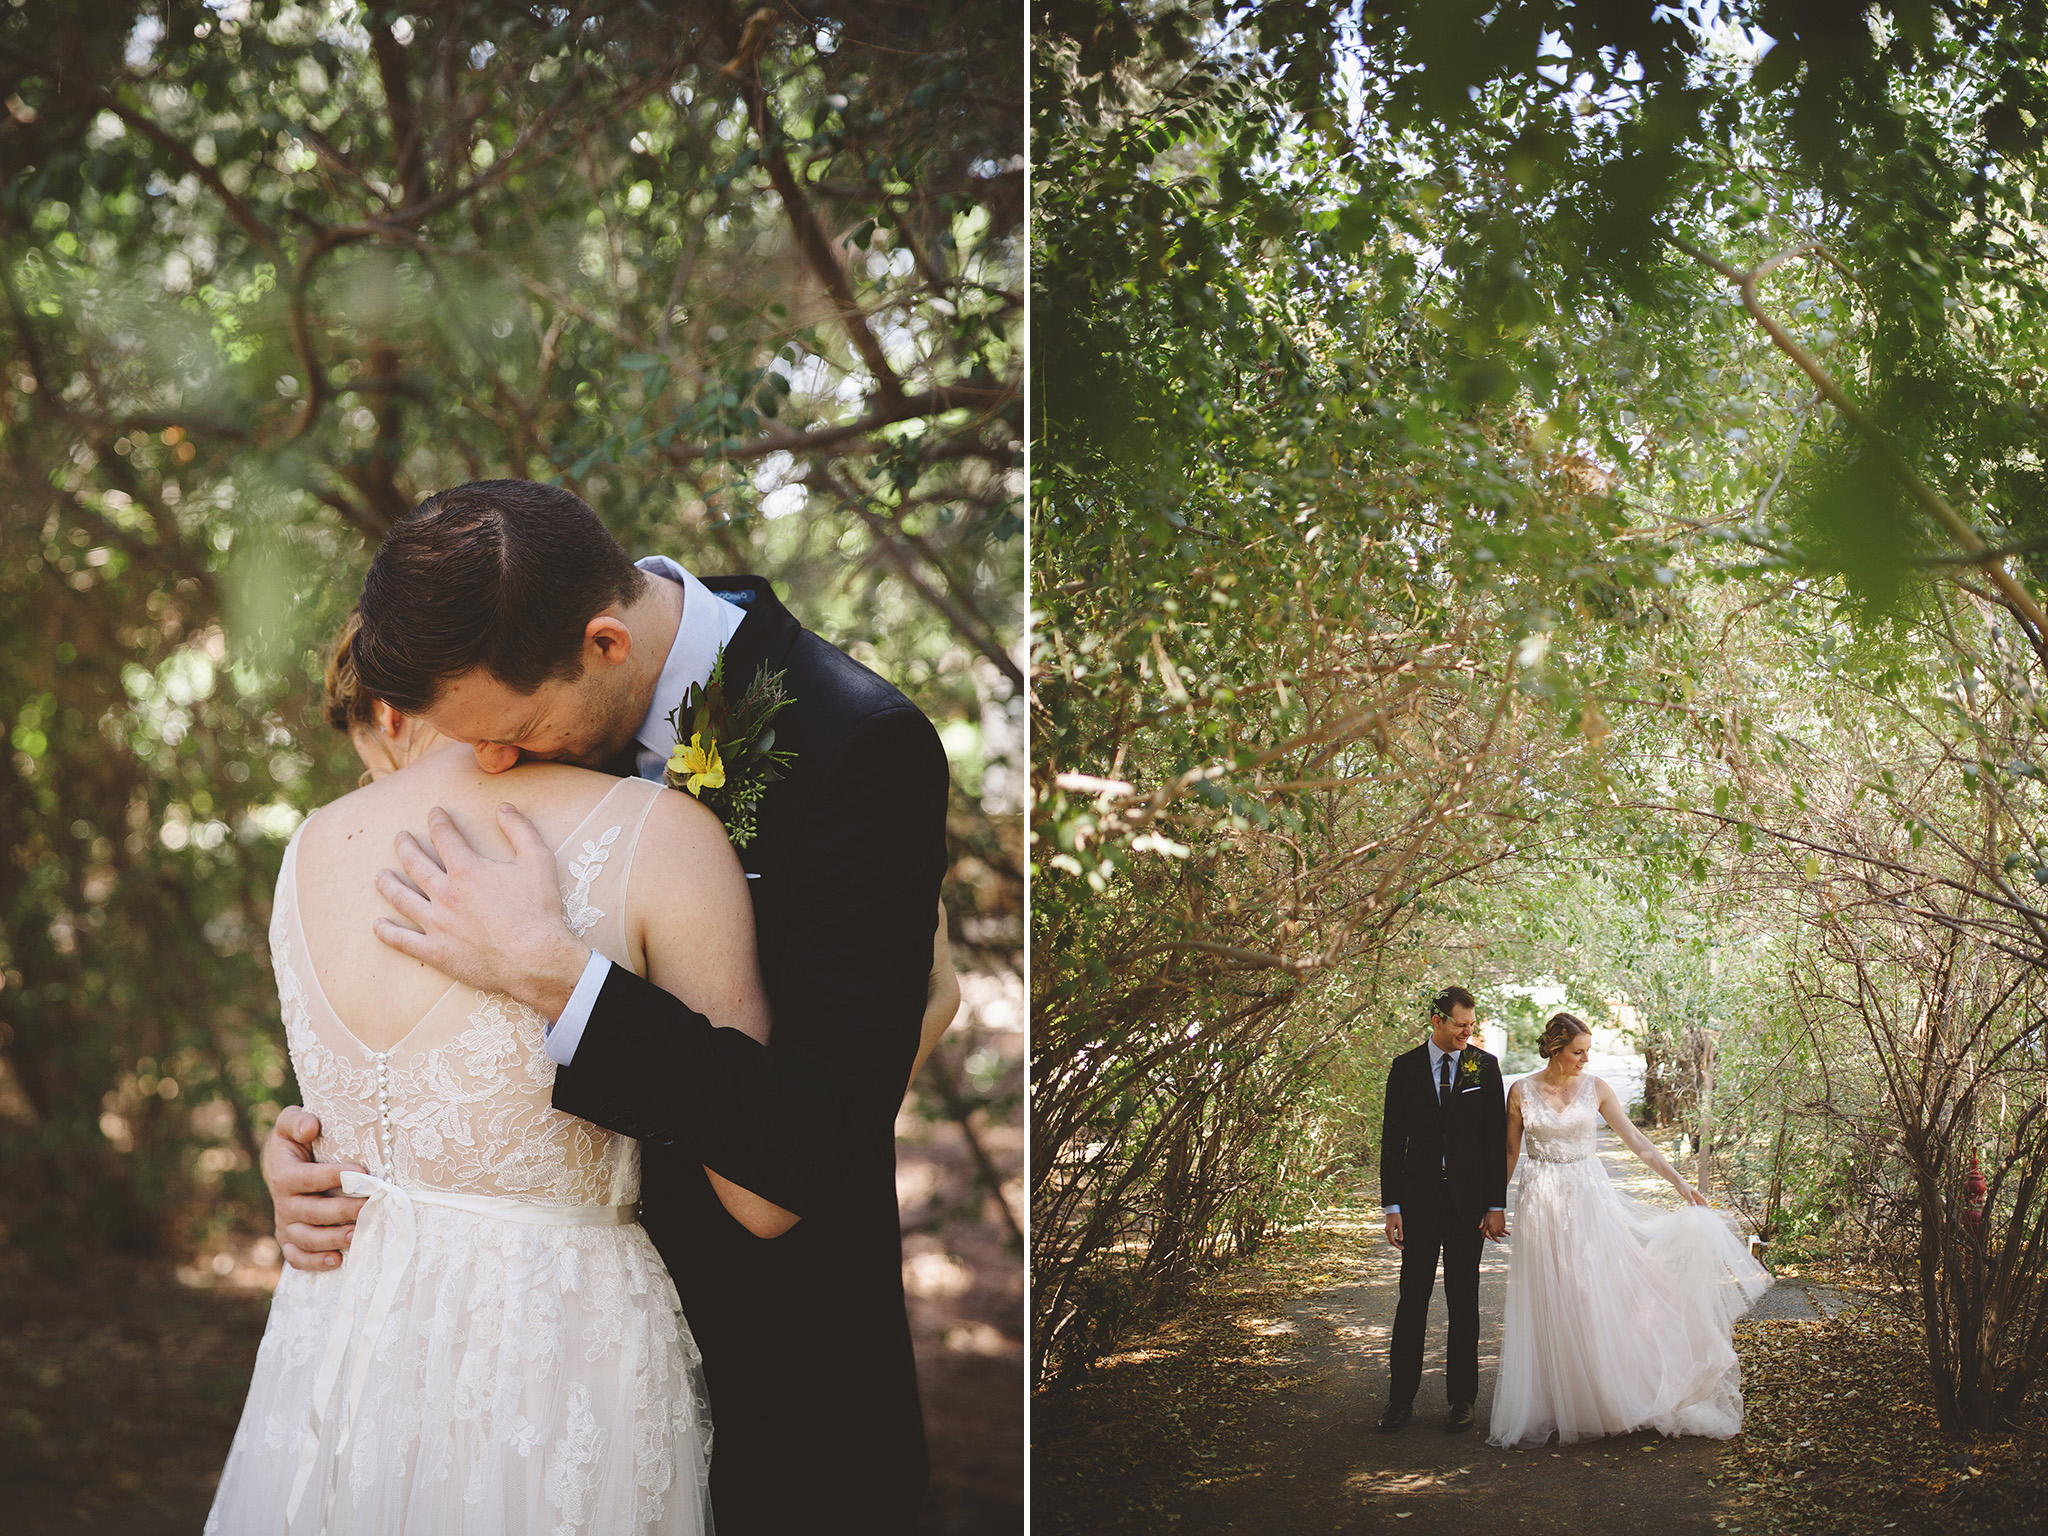 BoHo Highland Springs wedding pictures in California